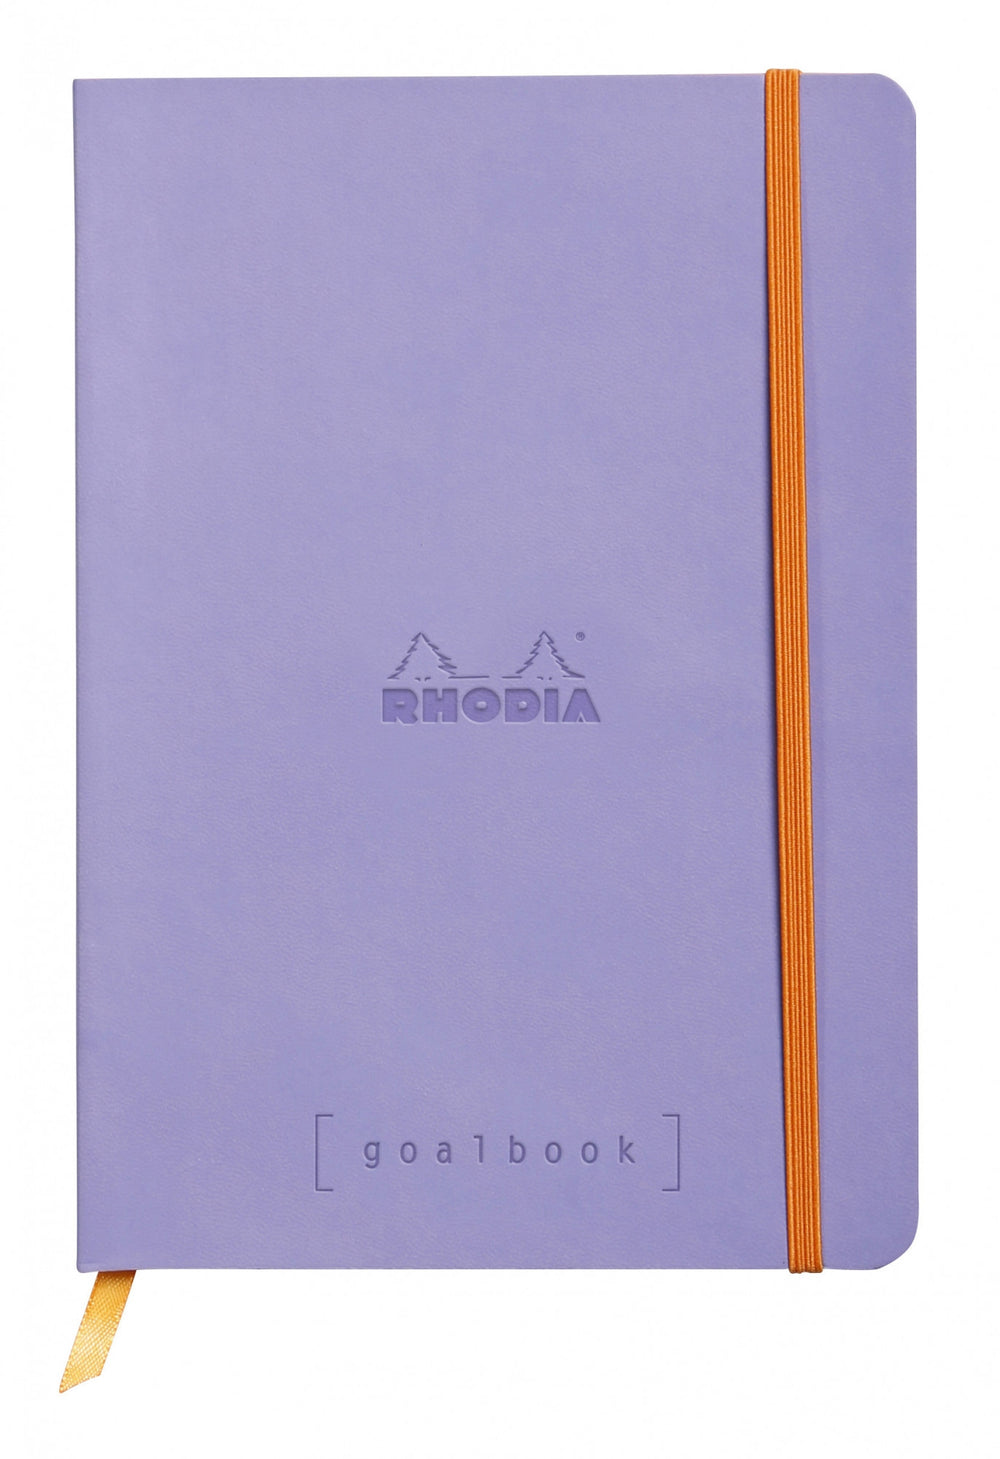 Rhodia A5 Goalbook- Iris